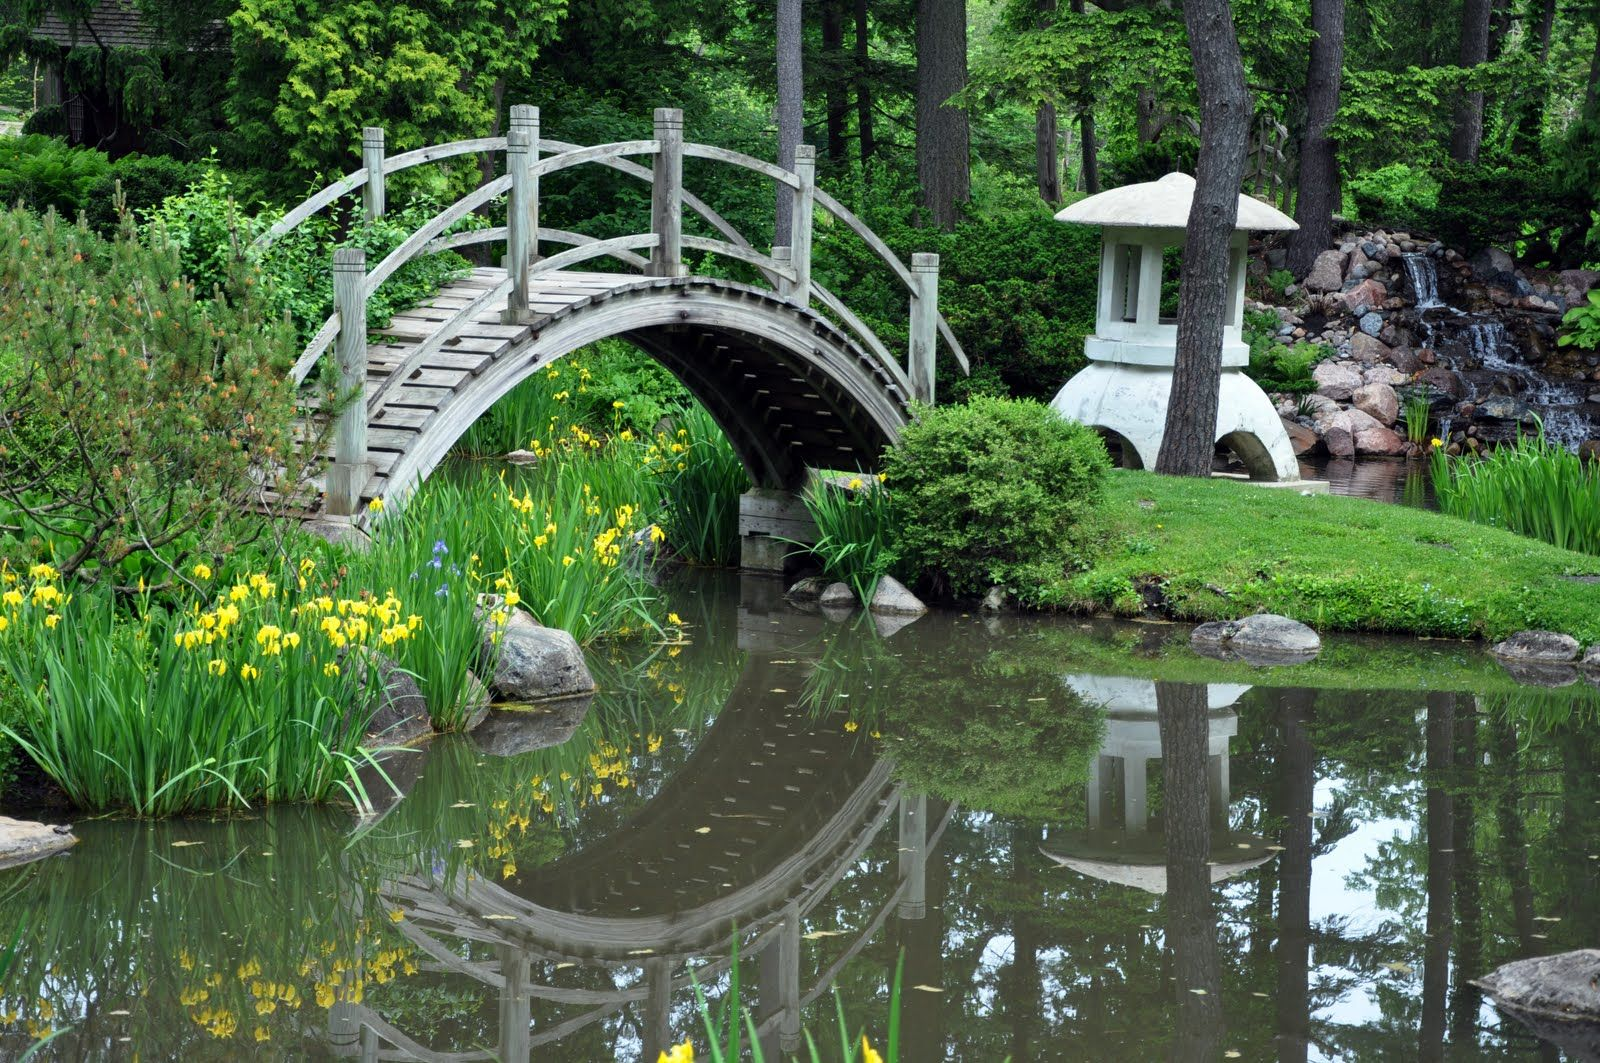 japanese garden bridge construction rick beato photo june 2010 - Japanese Garden Cherry Blossom Bridge